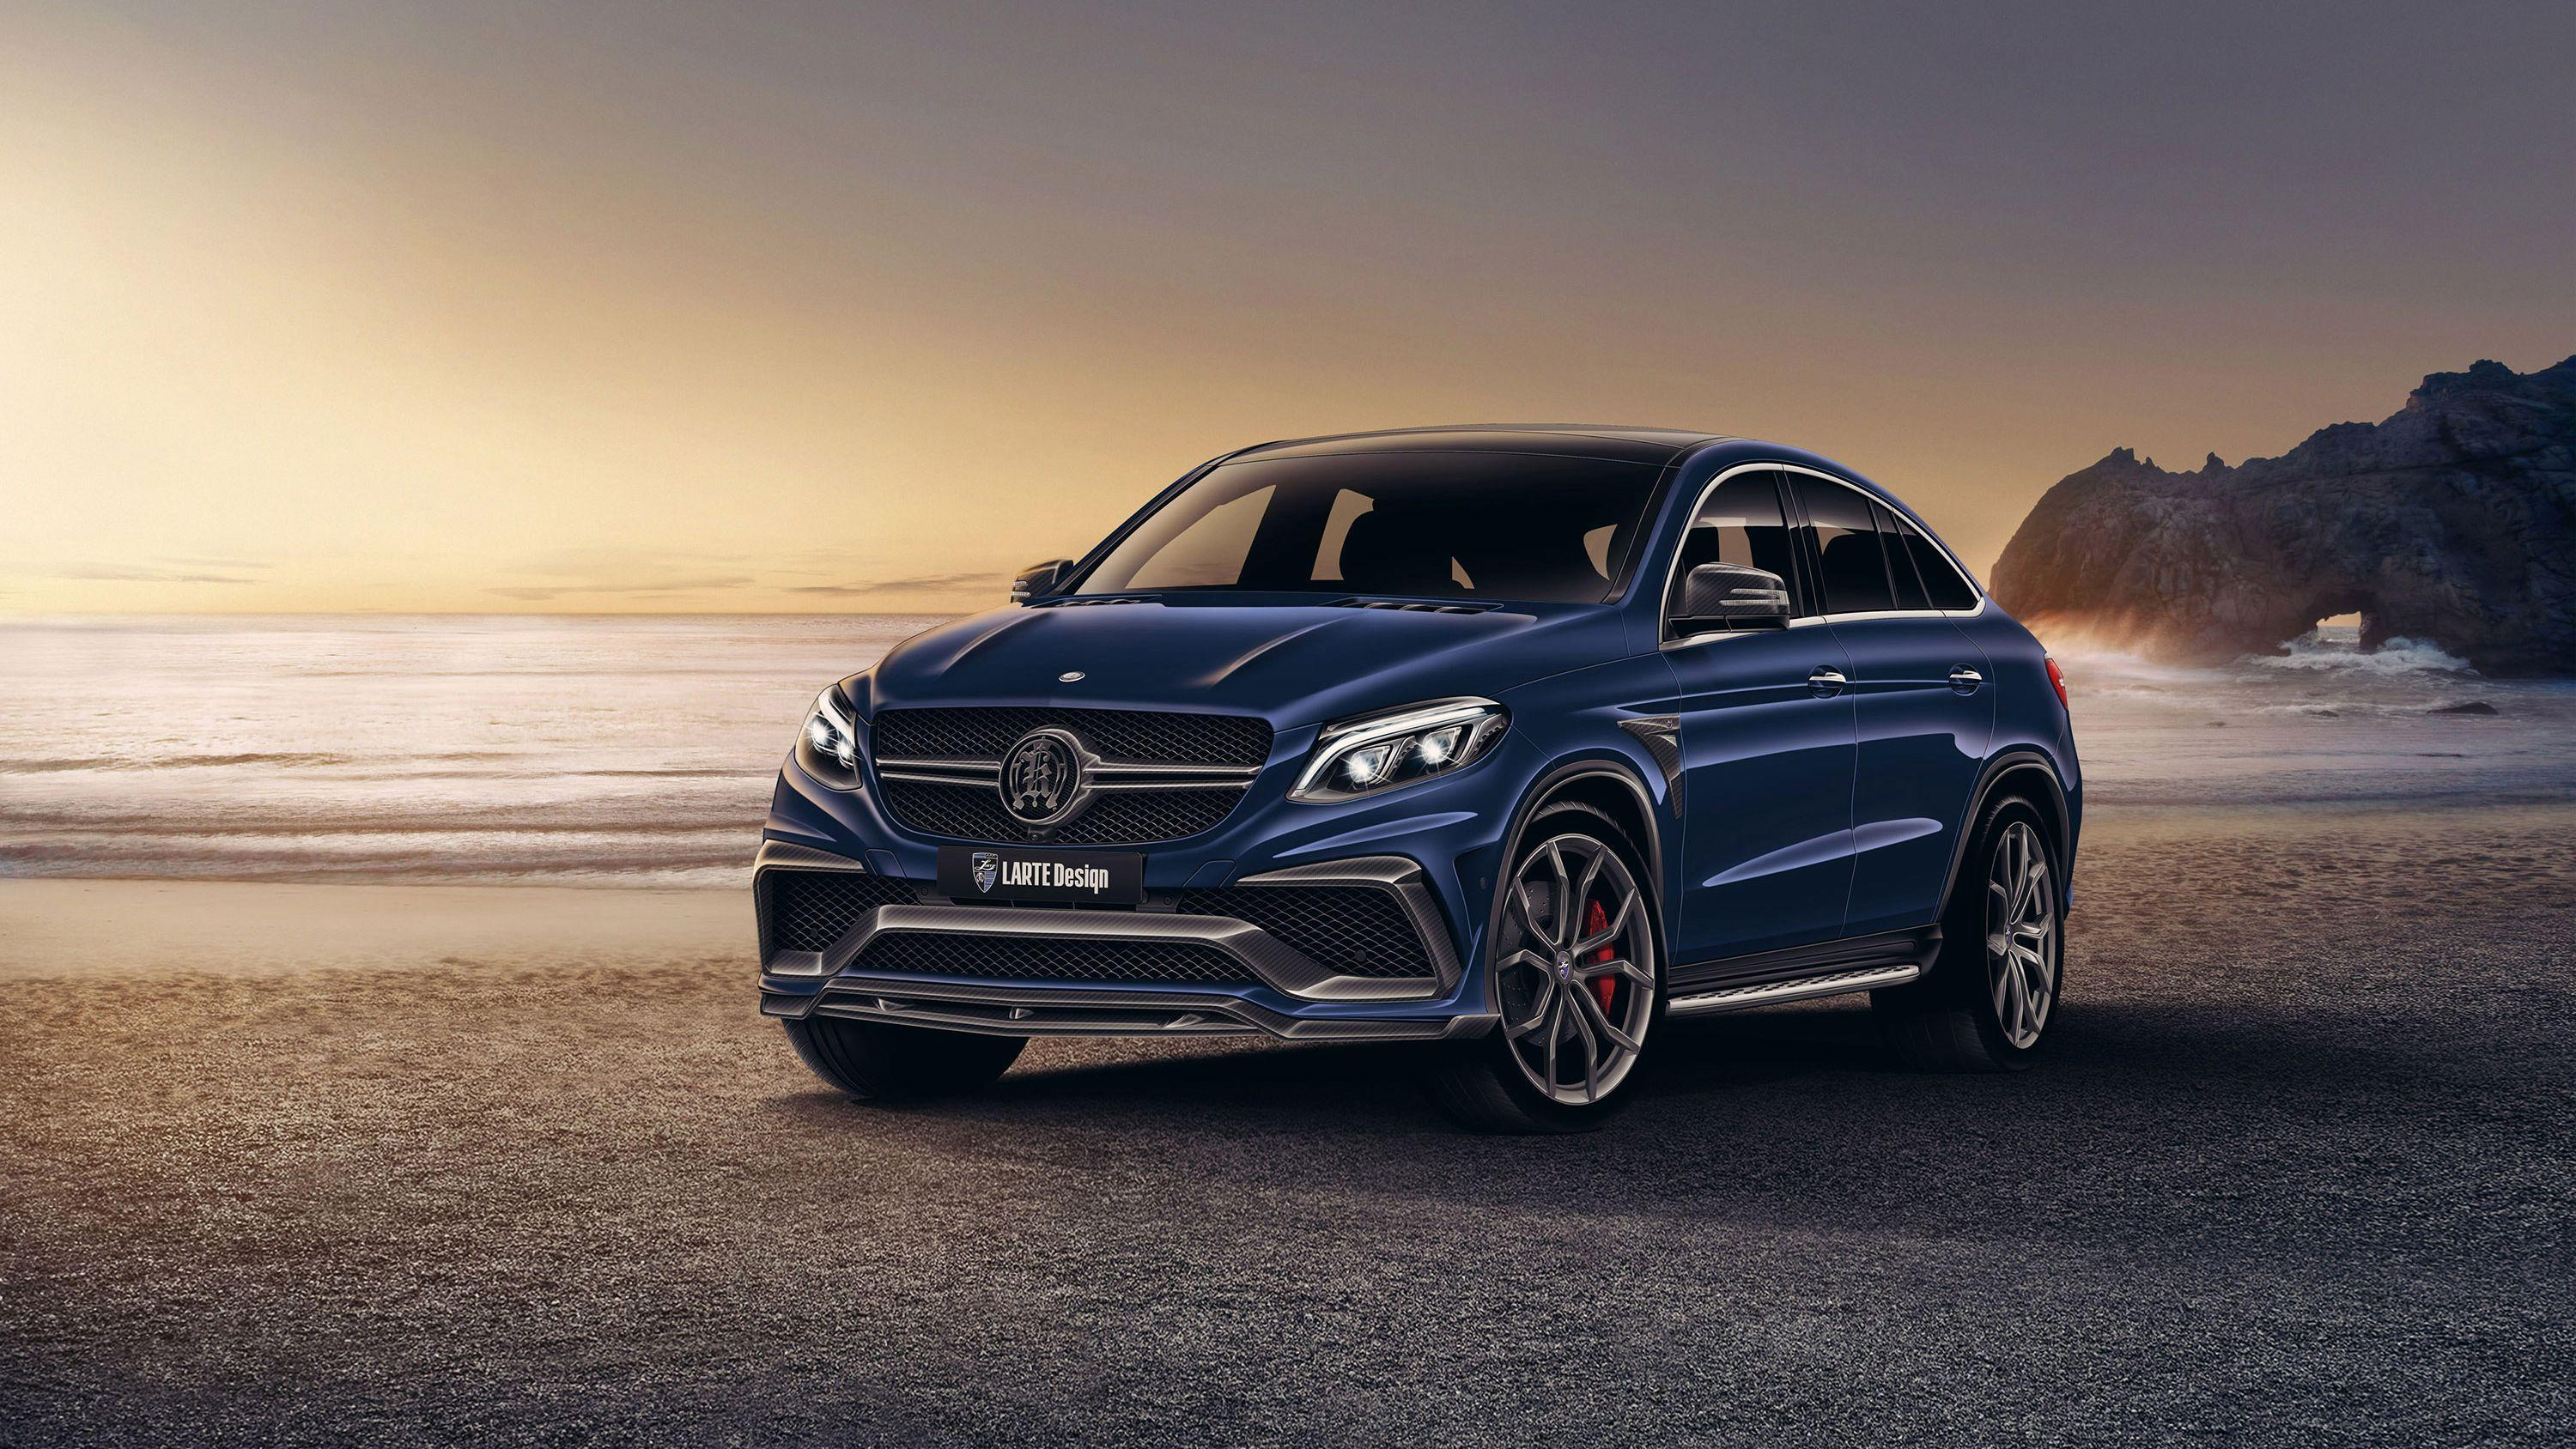 Mercedes Benz Car Wallpapers,Pictures